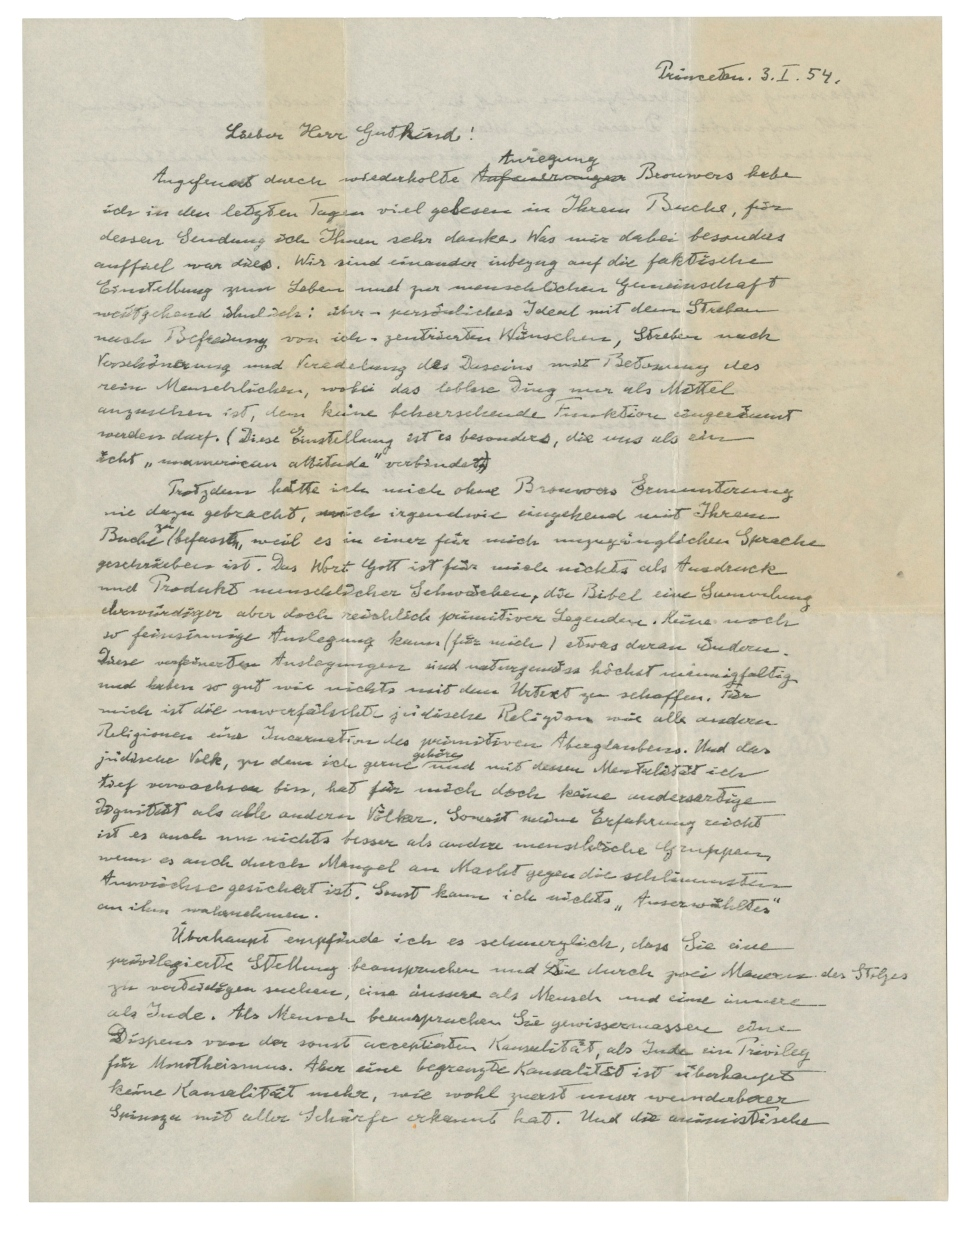 """This undated photo provided by Christie's shows the first page of Albert Einstein's """"God Letter,"""" dated January 3, 1954.in which he offers his candid and unvarnished opinion that: """"The word God is for me nothing but the expression and product of human weaknesses, the Bible a collection of venerable but still rather primitive legends."""" It is being auctioned by Christie's on Dec. 4, 2018. (Christie's via AP)"""